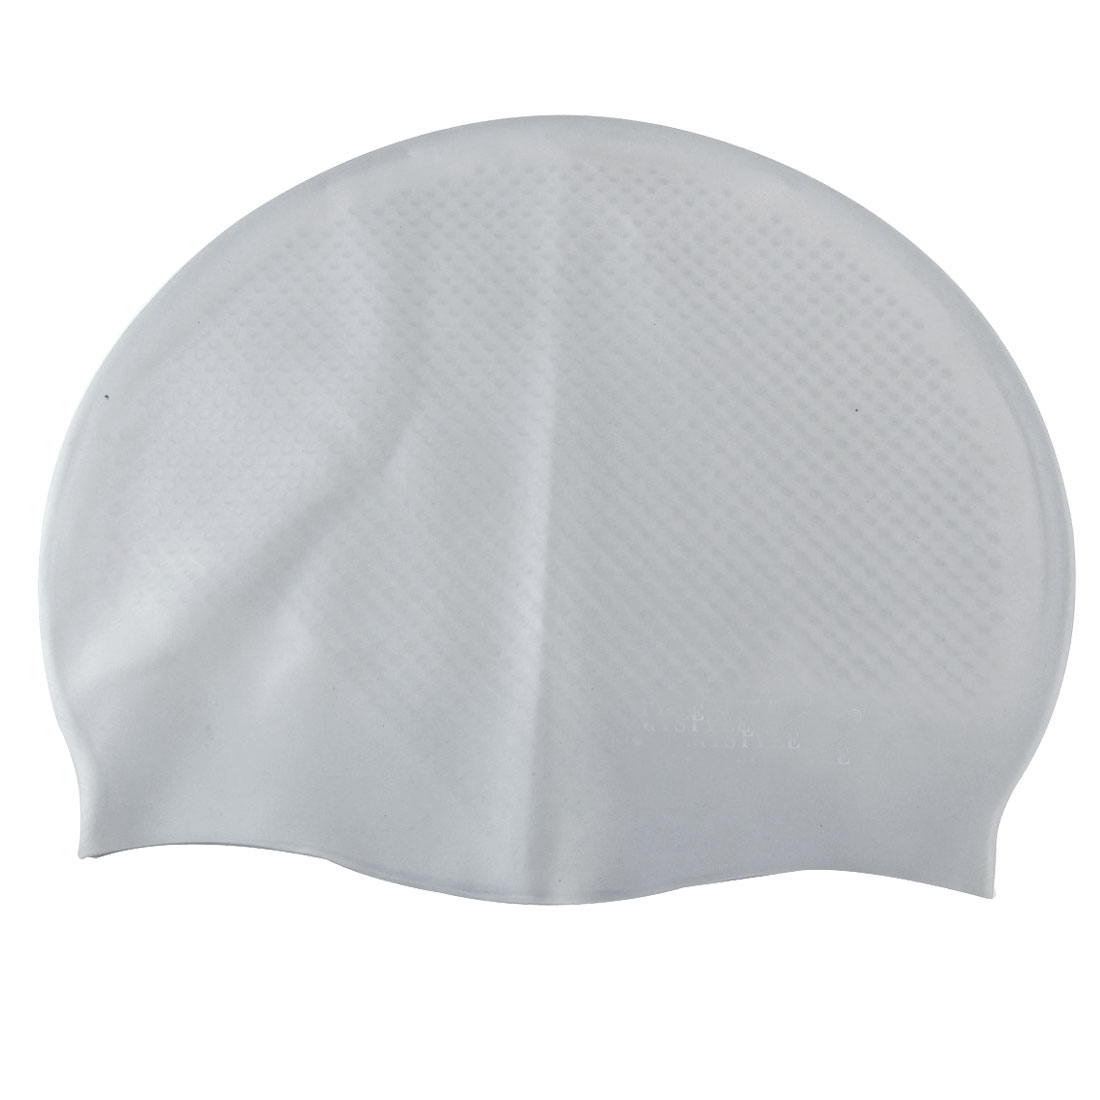 Gray Soft Silicone Inside Grains Design Swimming Cap for Adult